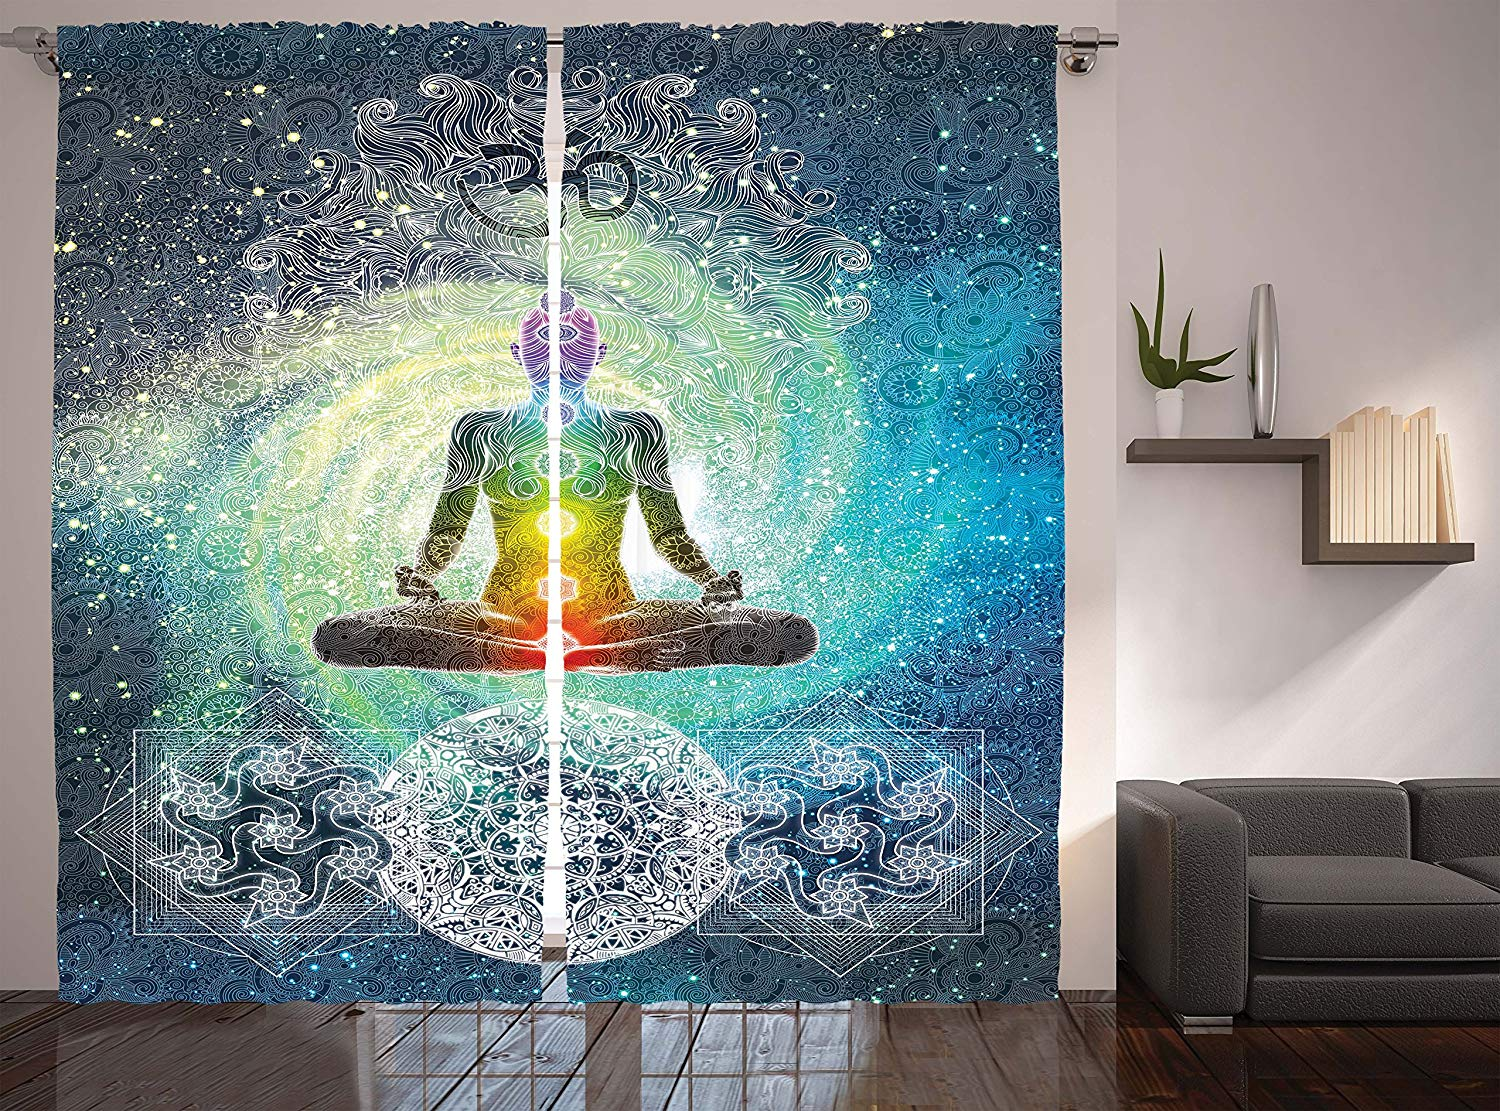 Us 12 36 41 Off Hippie Curtains Bohemian Mandala Yoga Zen Decor By The Office Living Room Bedroom Curtain Rainbow Colors In